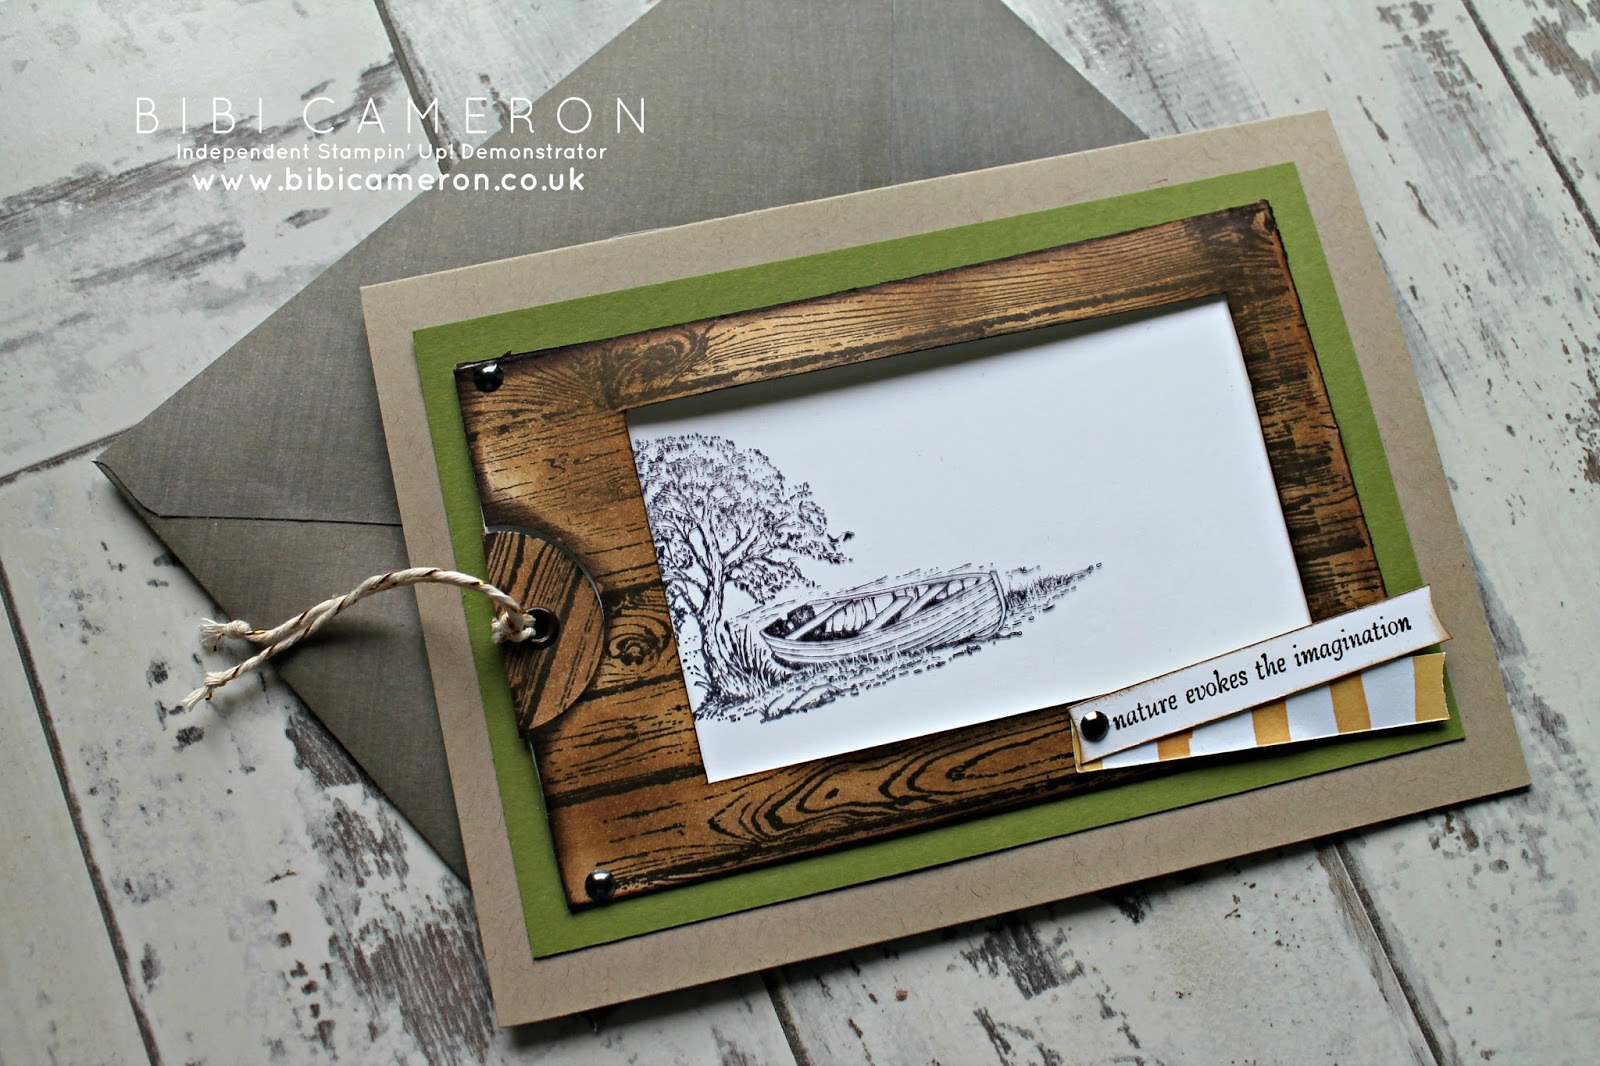 "src=""http://www.bibicameron.co.uk"" alt=""moon lake stampin up""></a>"